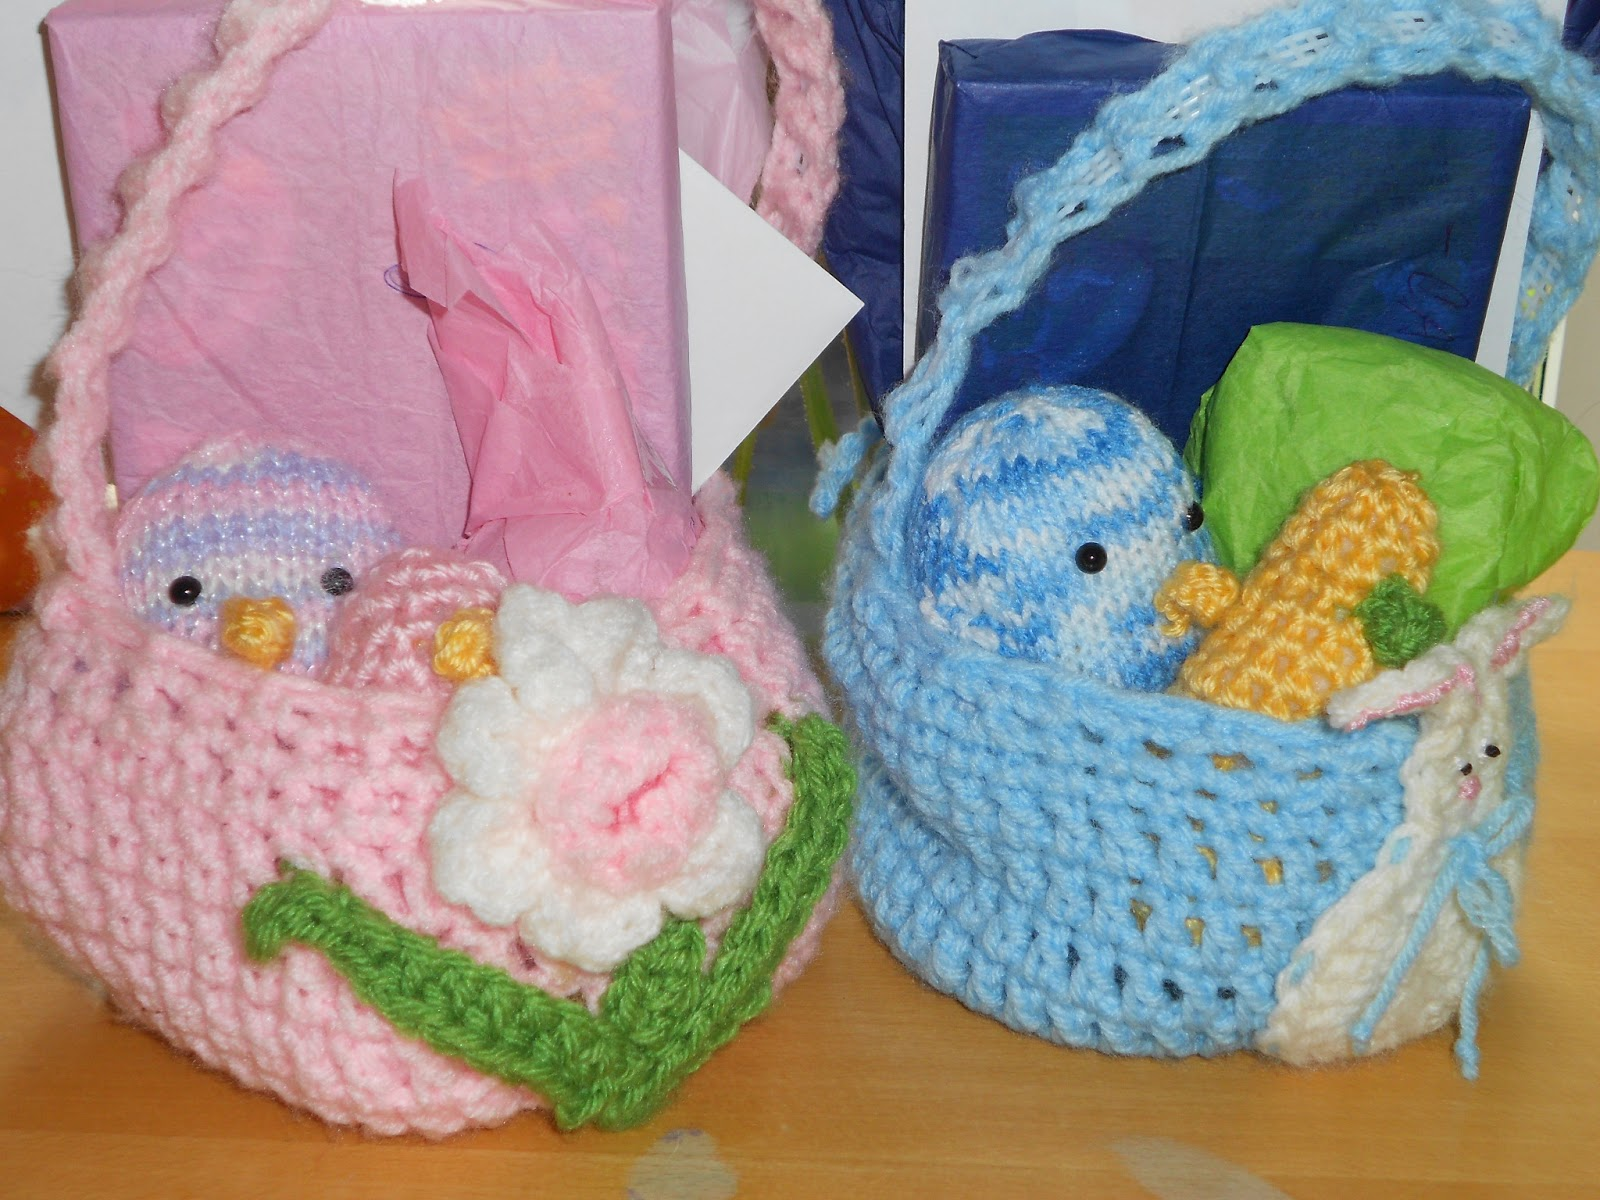 Crochet Easter Basket : On blue basket is a bunny, flower on pink basket.